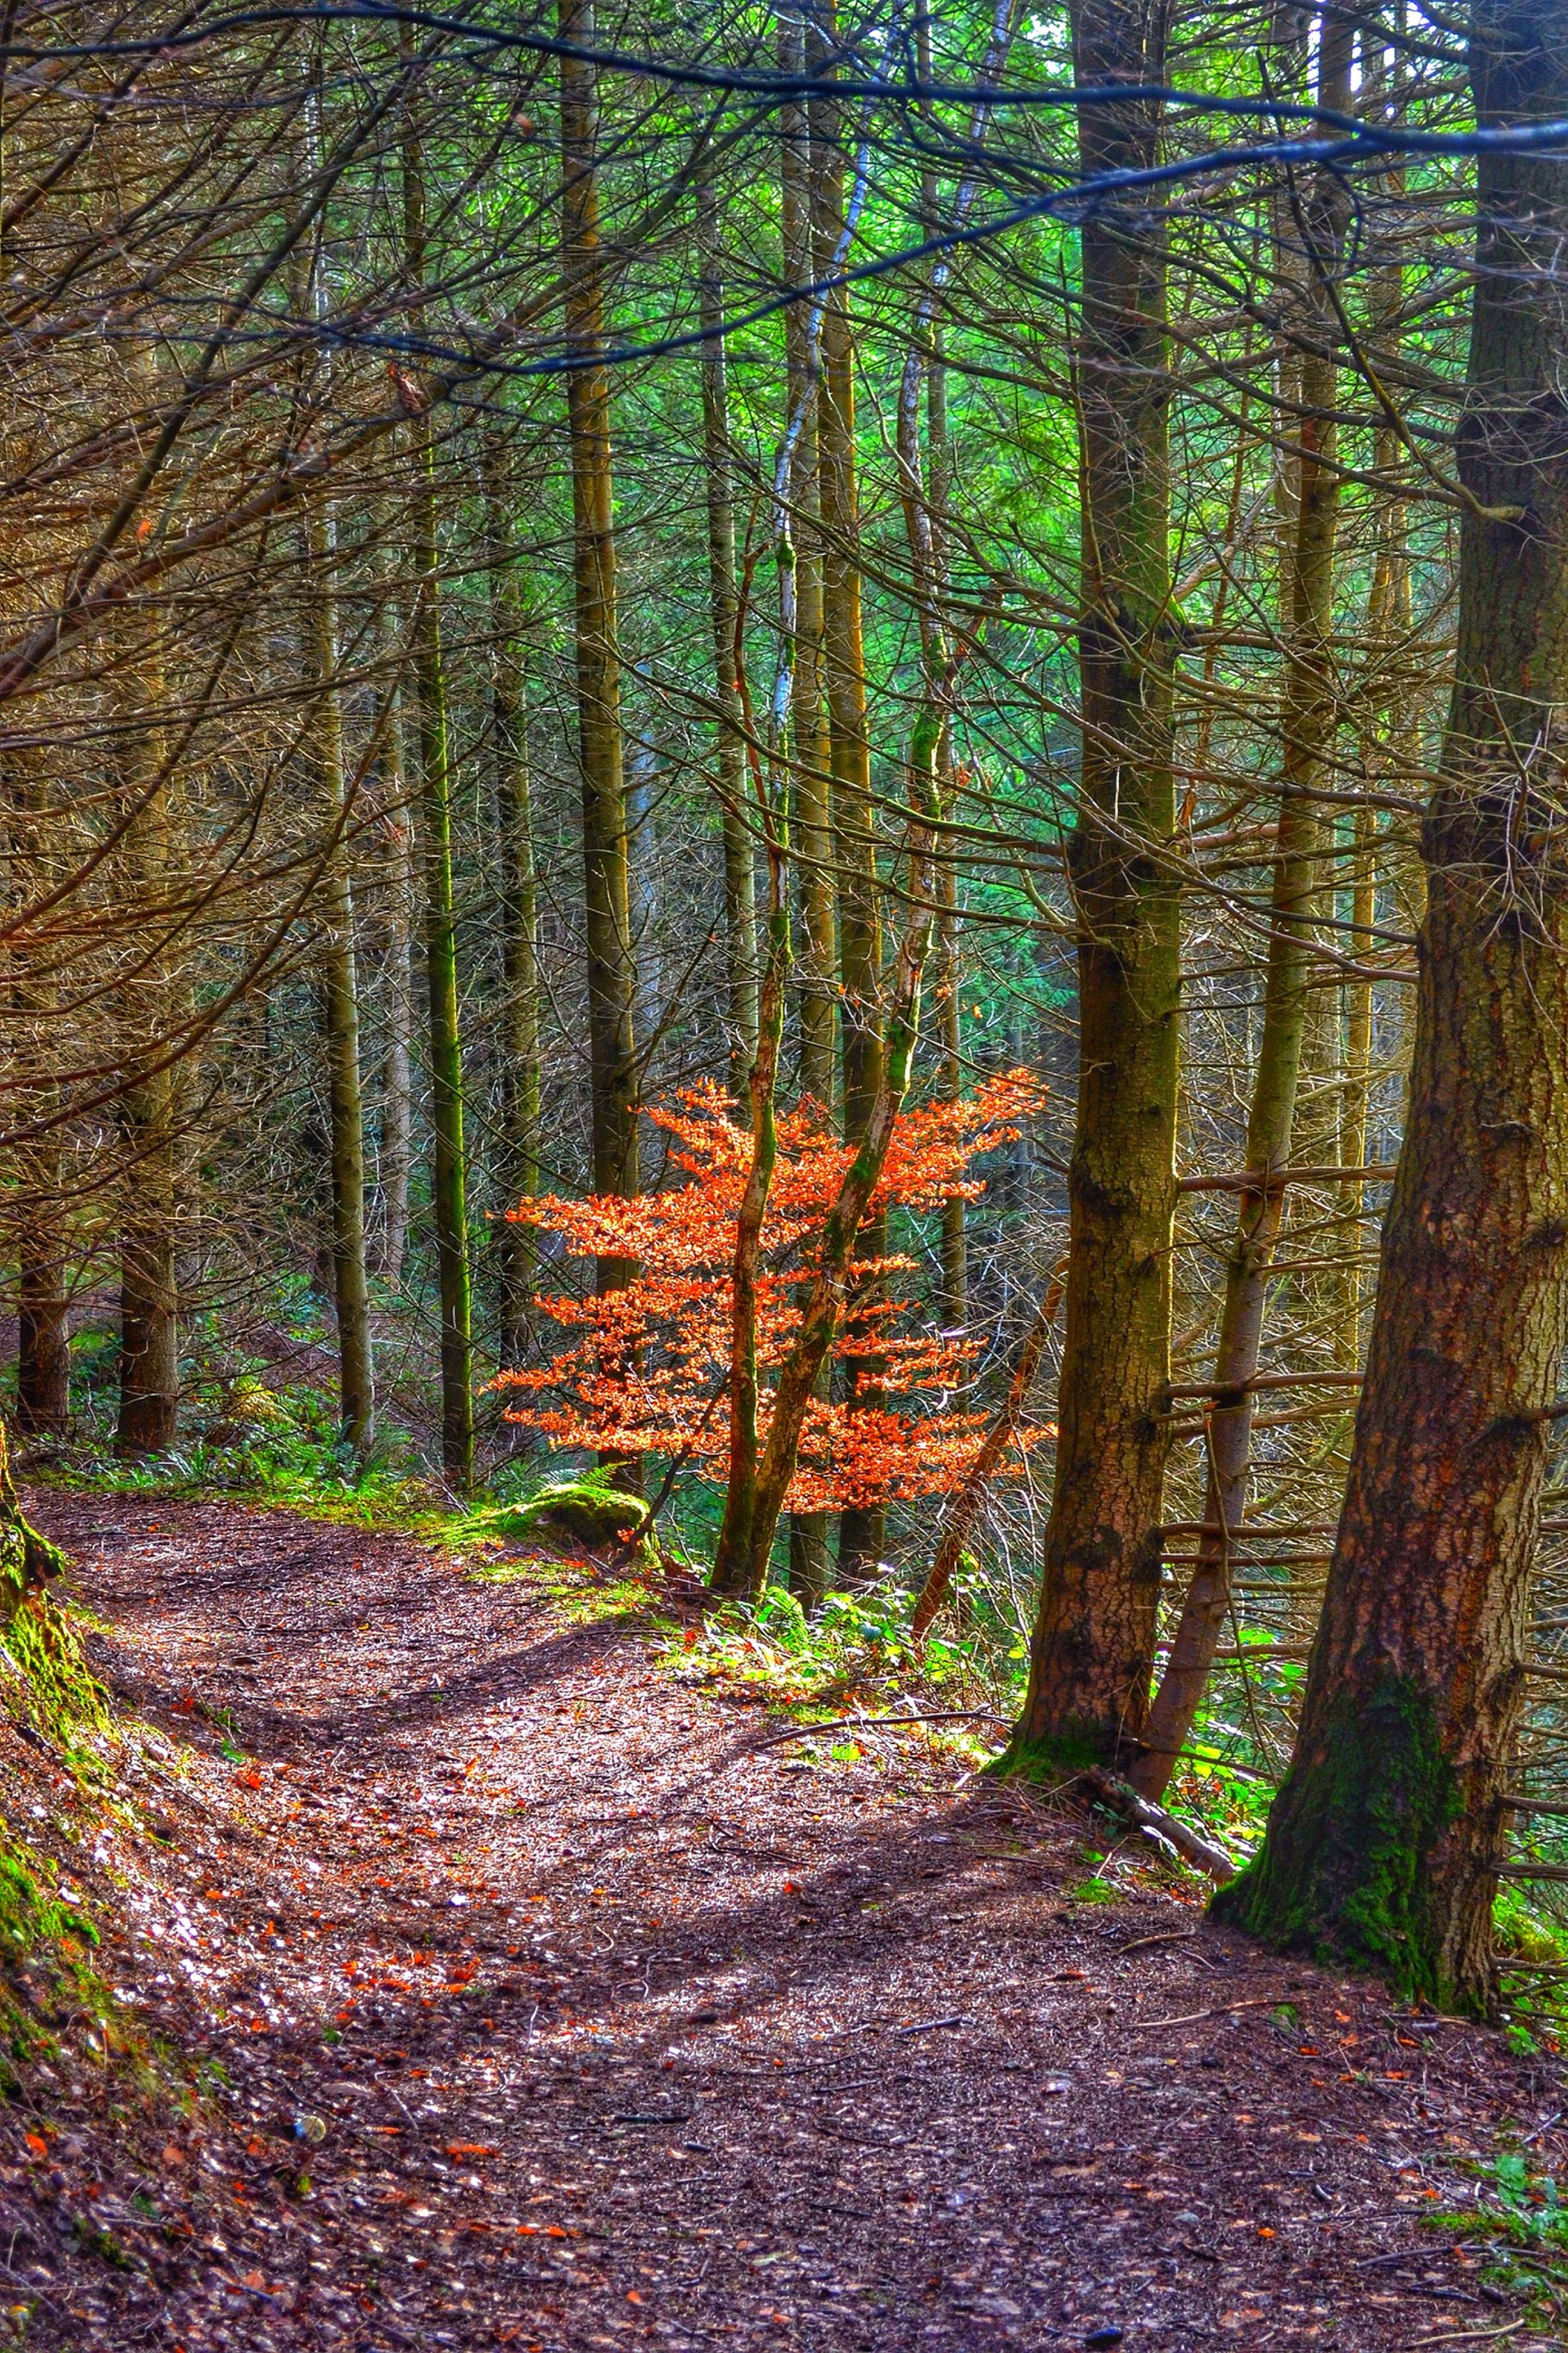 tree, forest, tree trunk, tranquility, woodland, autumn, nature, growth, tranquil scene, beauty in nature, change, the way forward, scenics, leaf, footpath, non-urban scene, landscape, branch, day, season